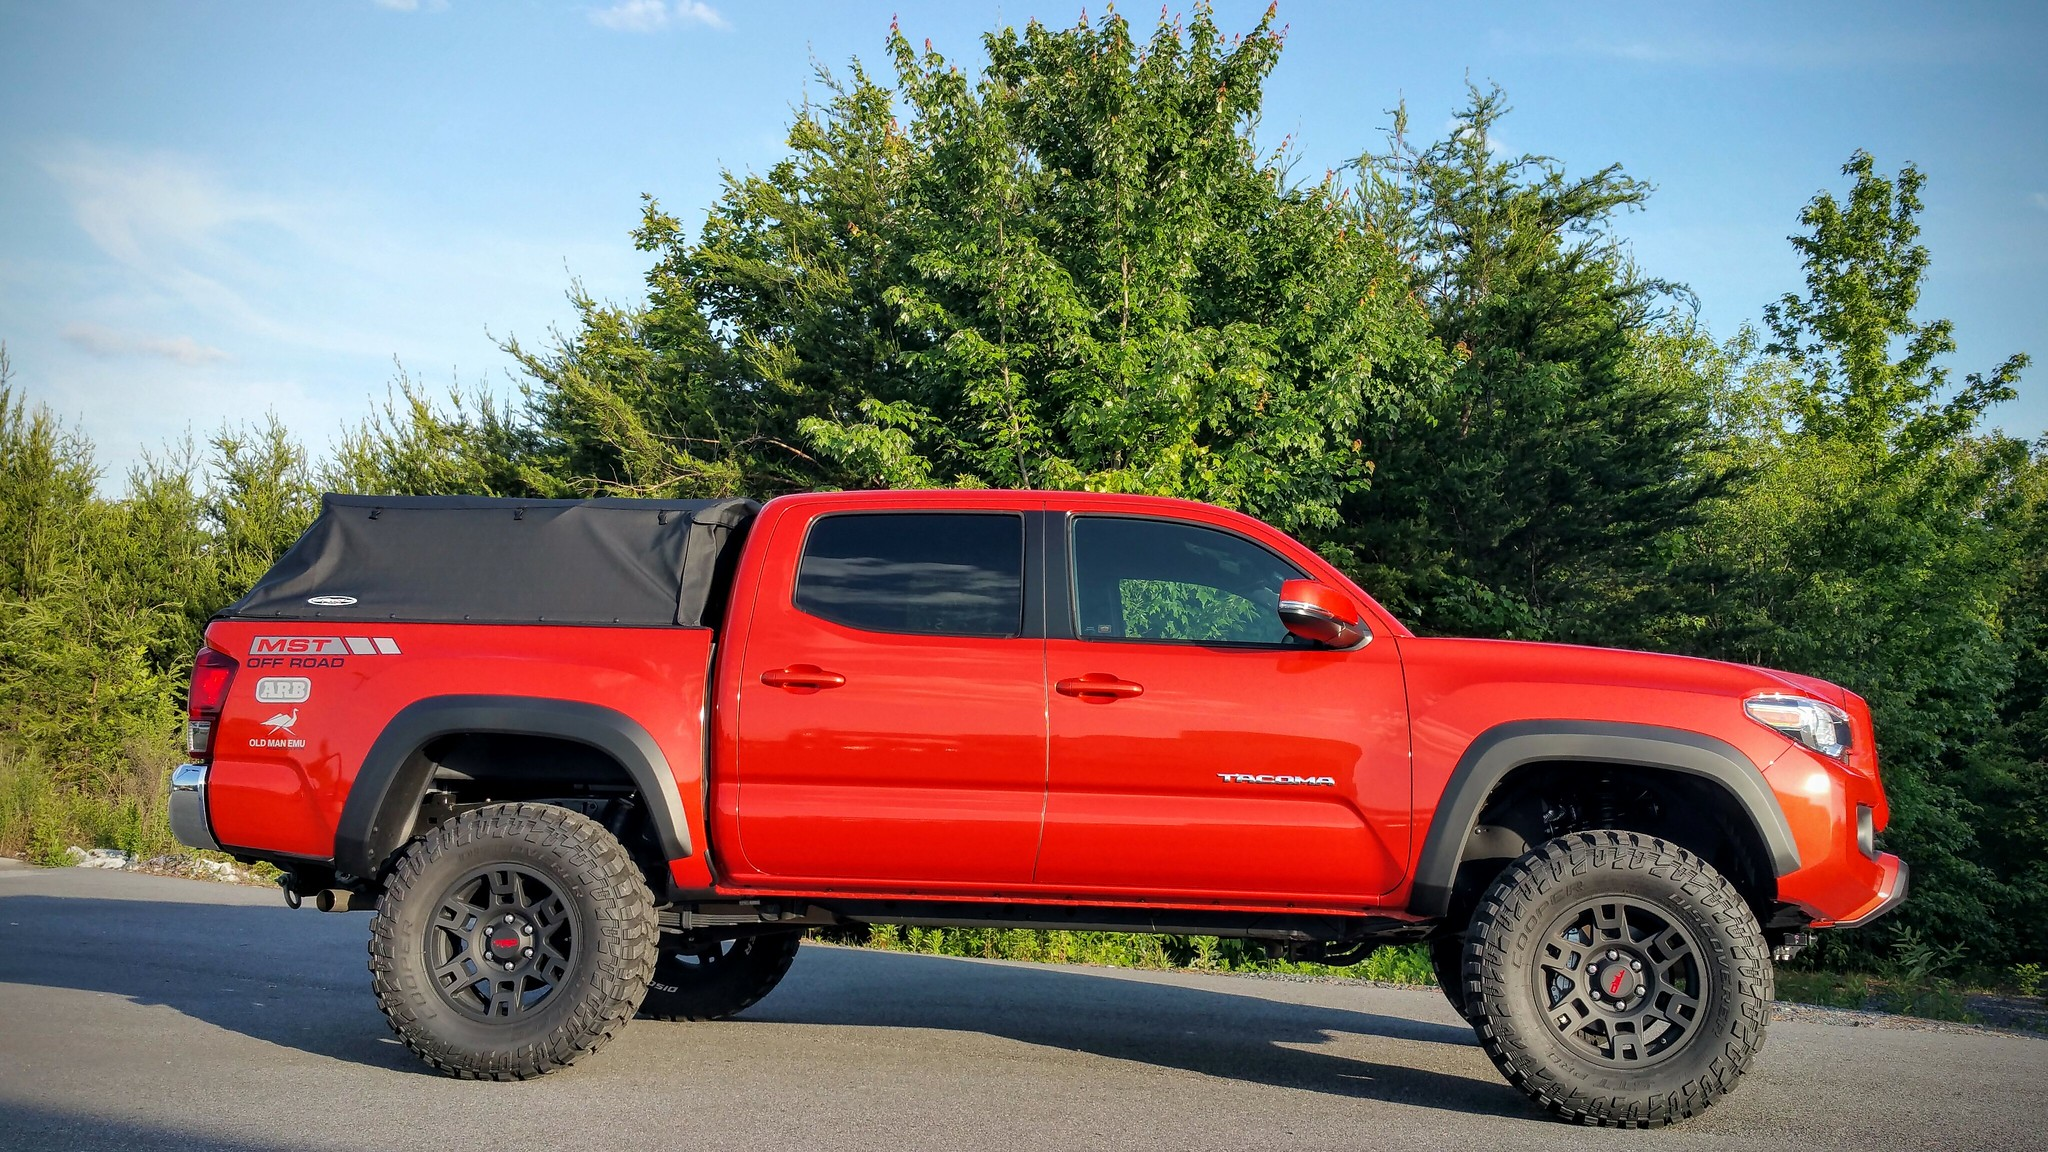 Pongo The Story Of Our 2016 Tacoma Expedition Portal